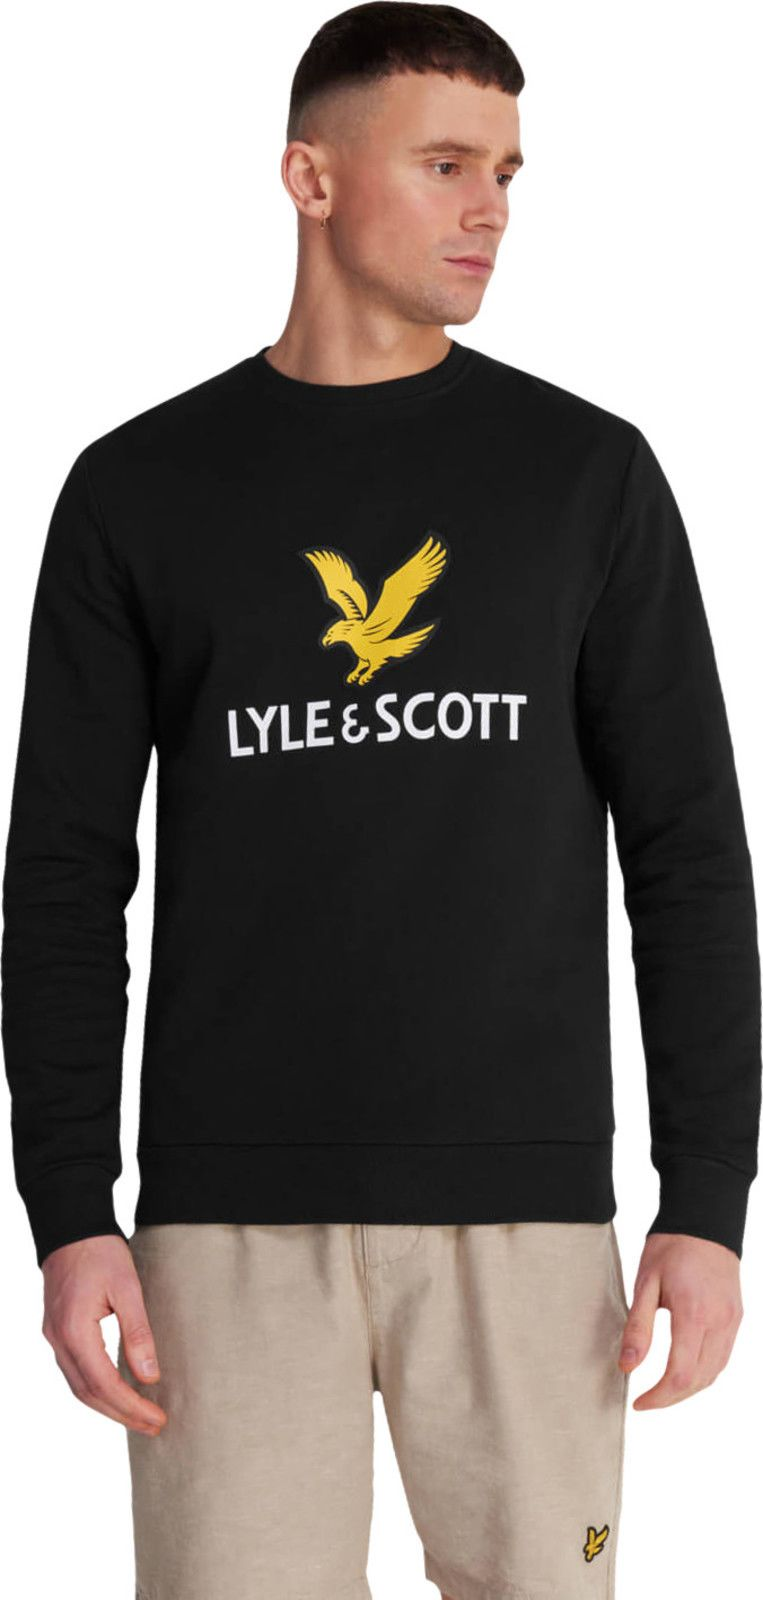 Lyle & Scott Logo Sweatshirt Black